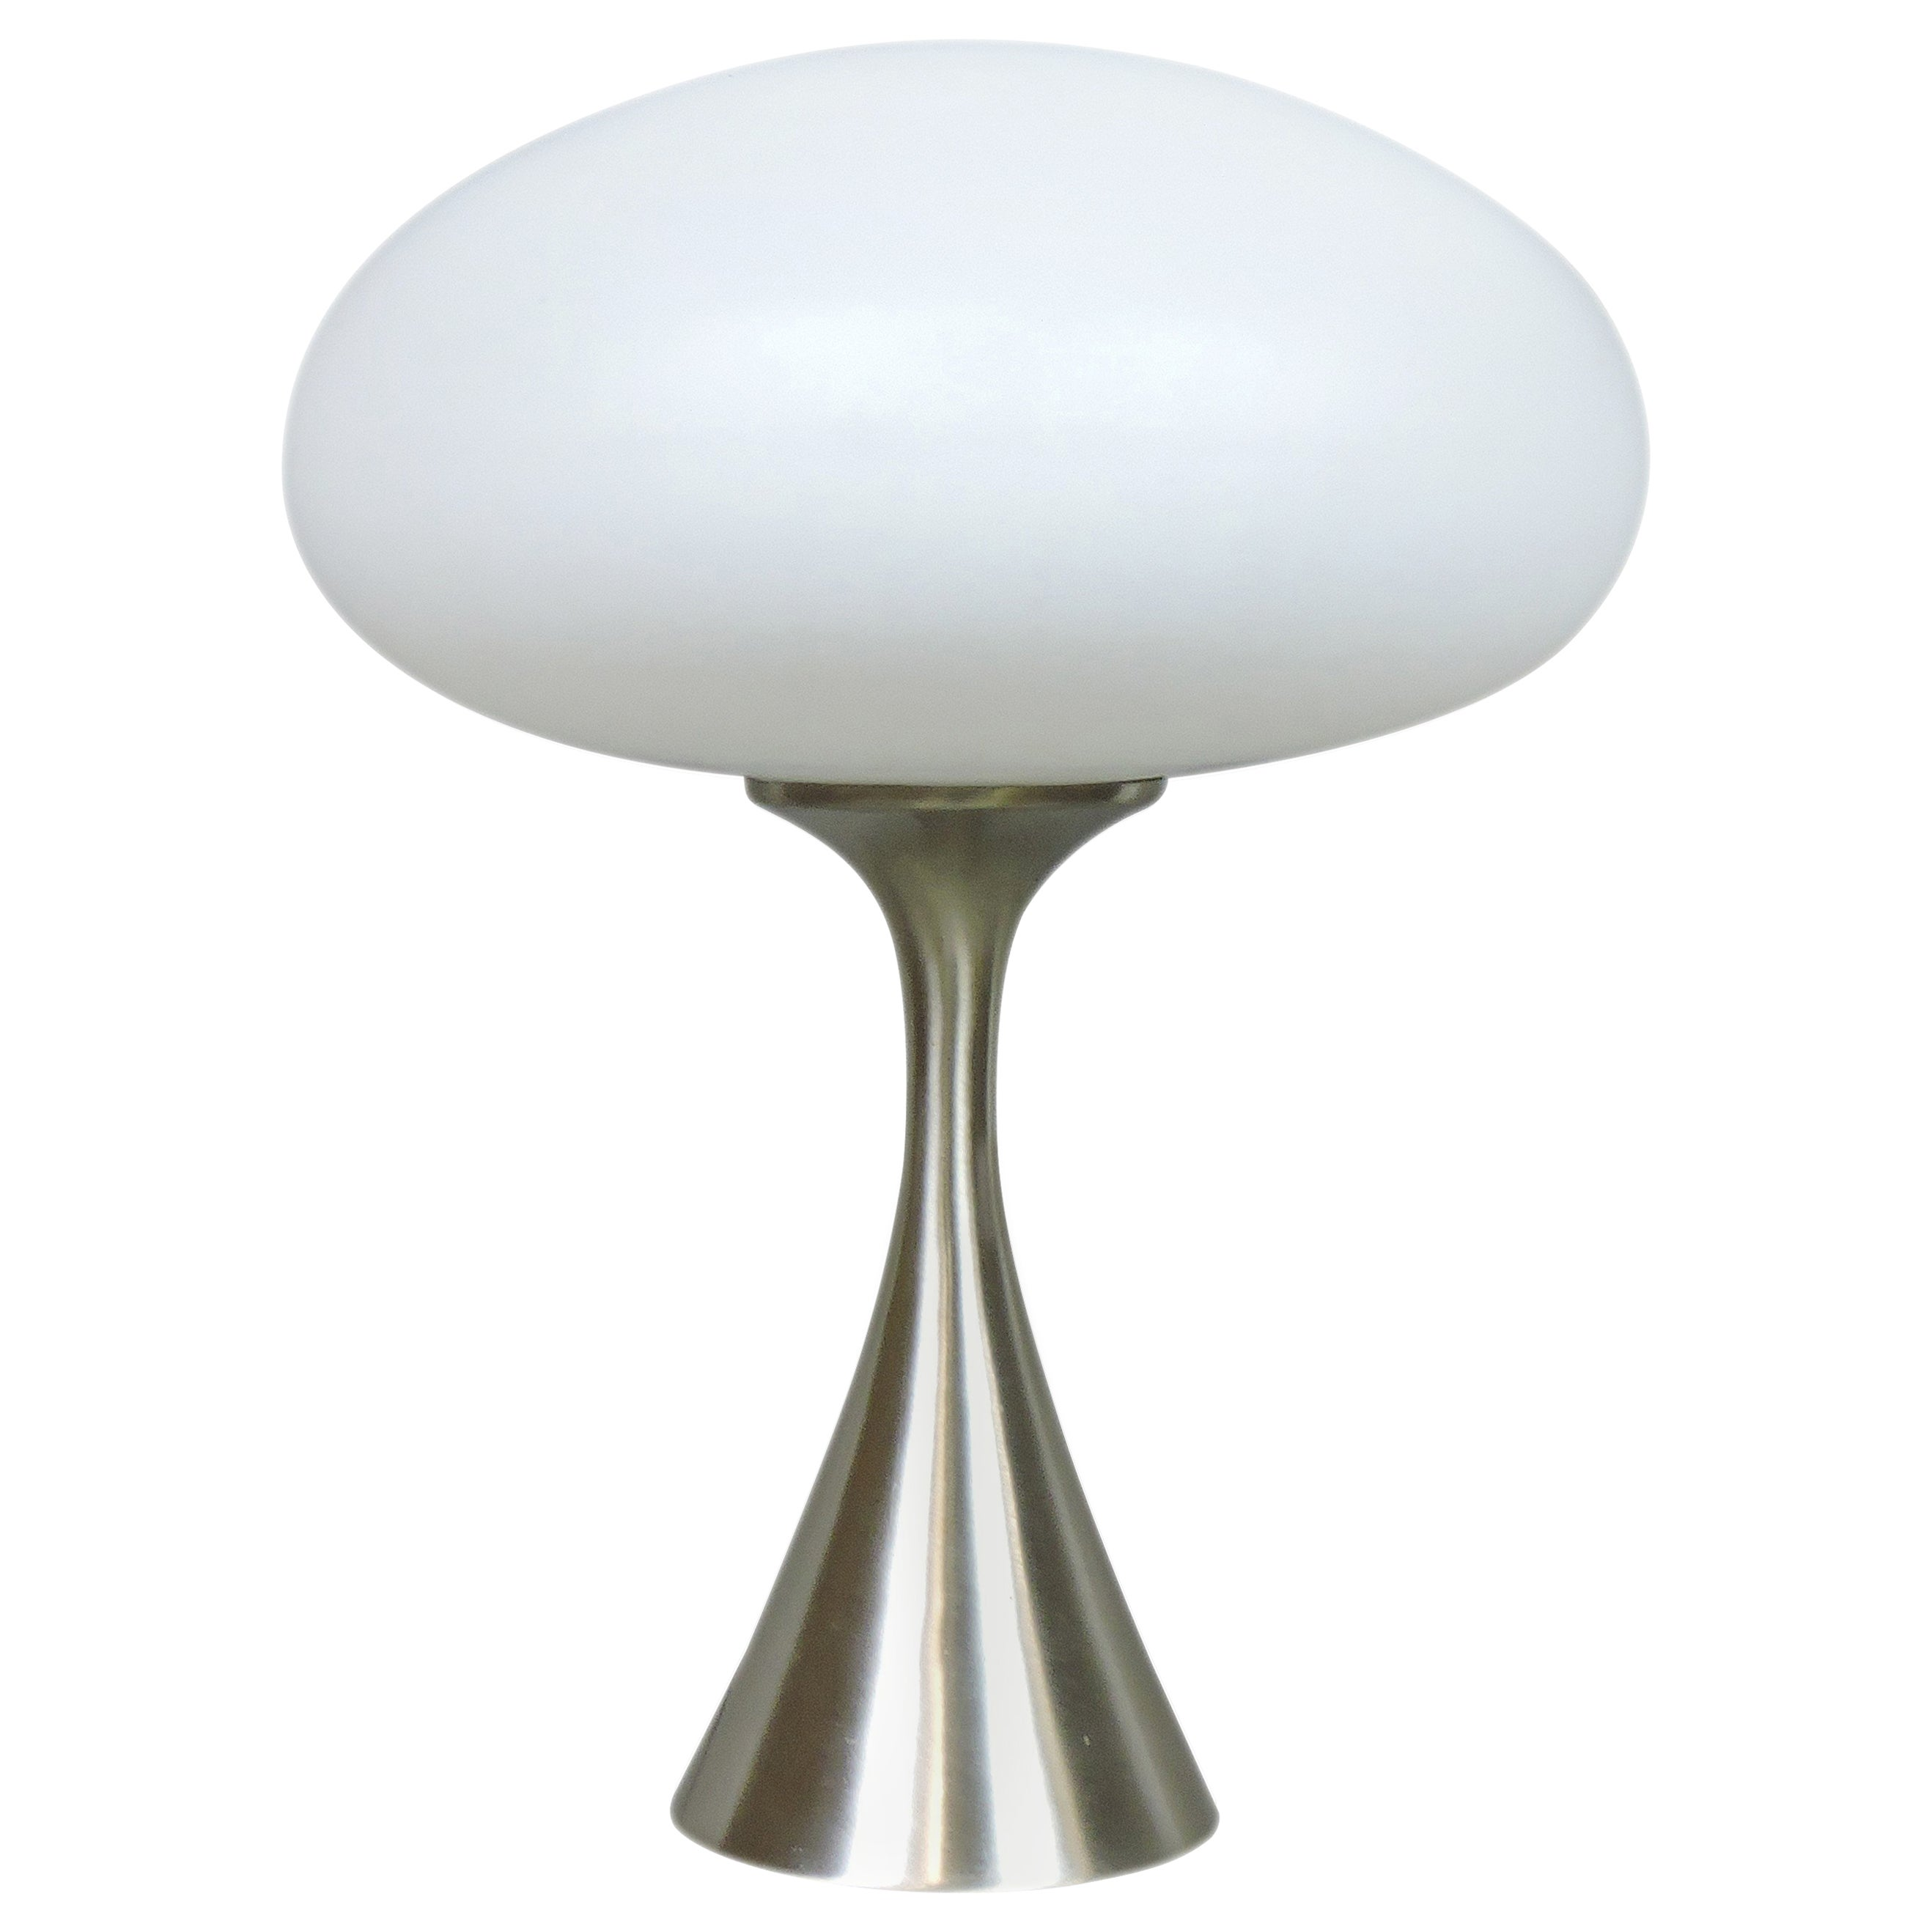 Laurel Lamp Co Mid Century Modern Mushroom Brushed Chrome Table